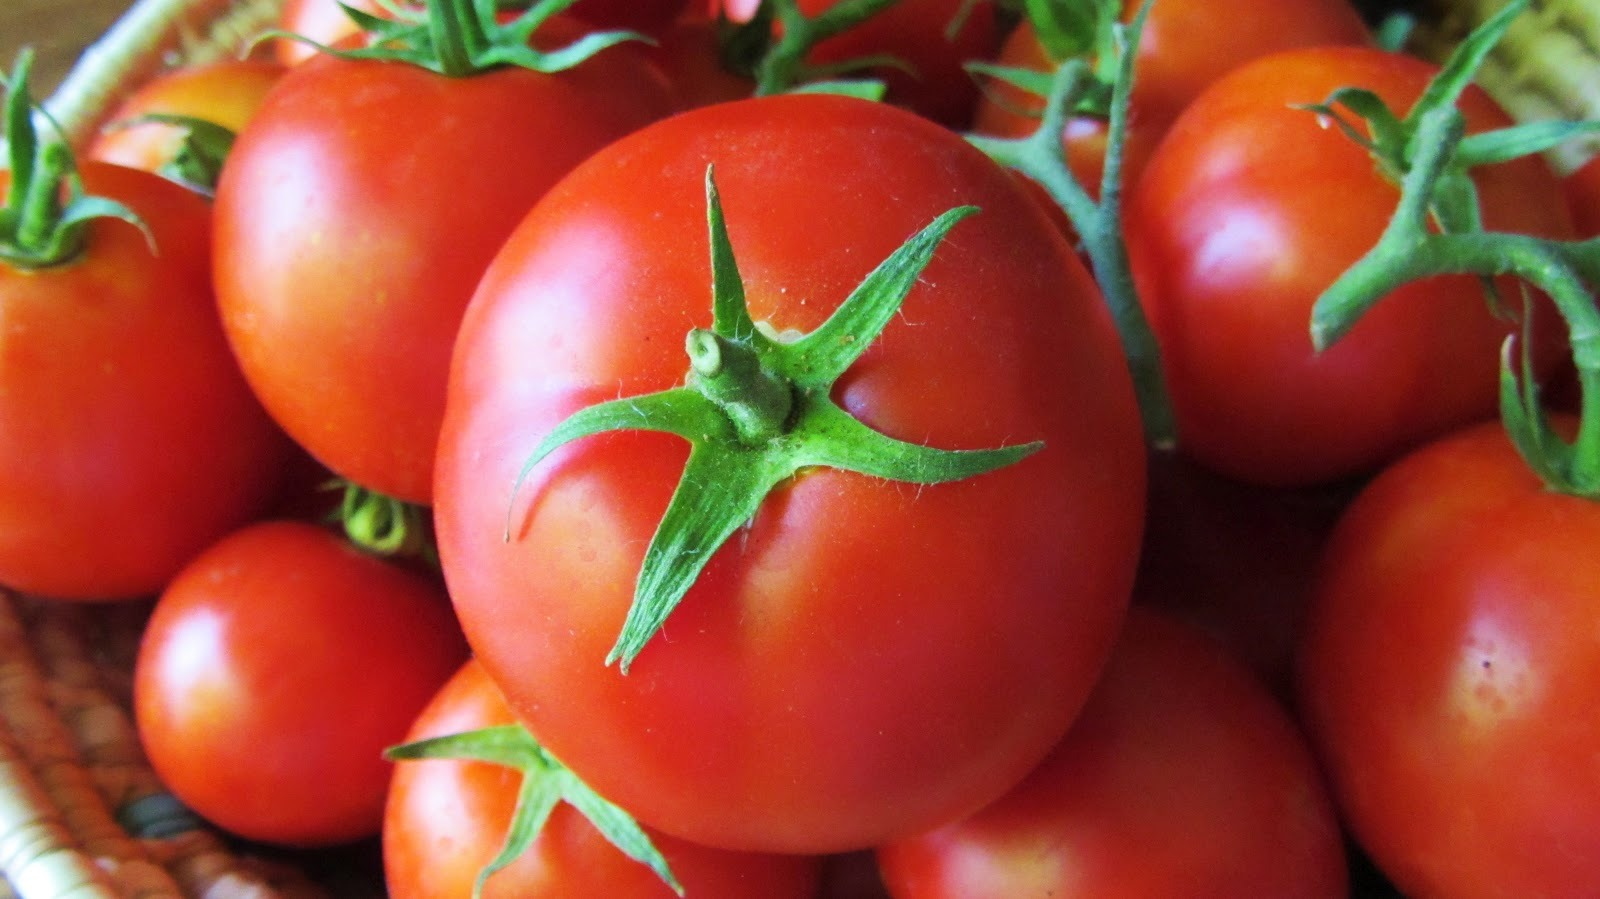 Beauty Foods Tip---Eat plenty of tomatoes, which are rich in vitamin A, vitamin C and potassium; all are great ingredients for beautiful skin.